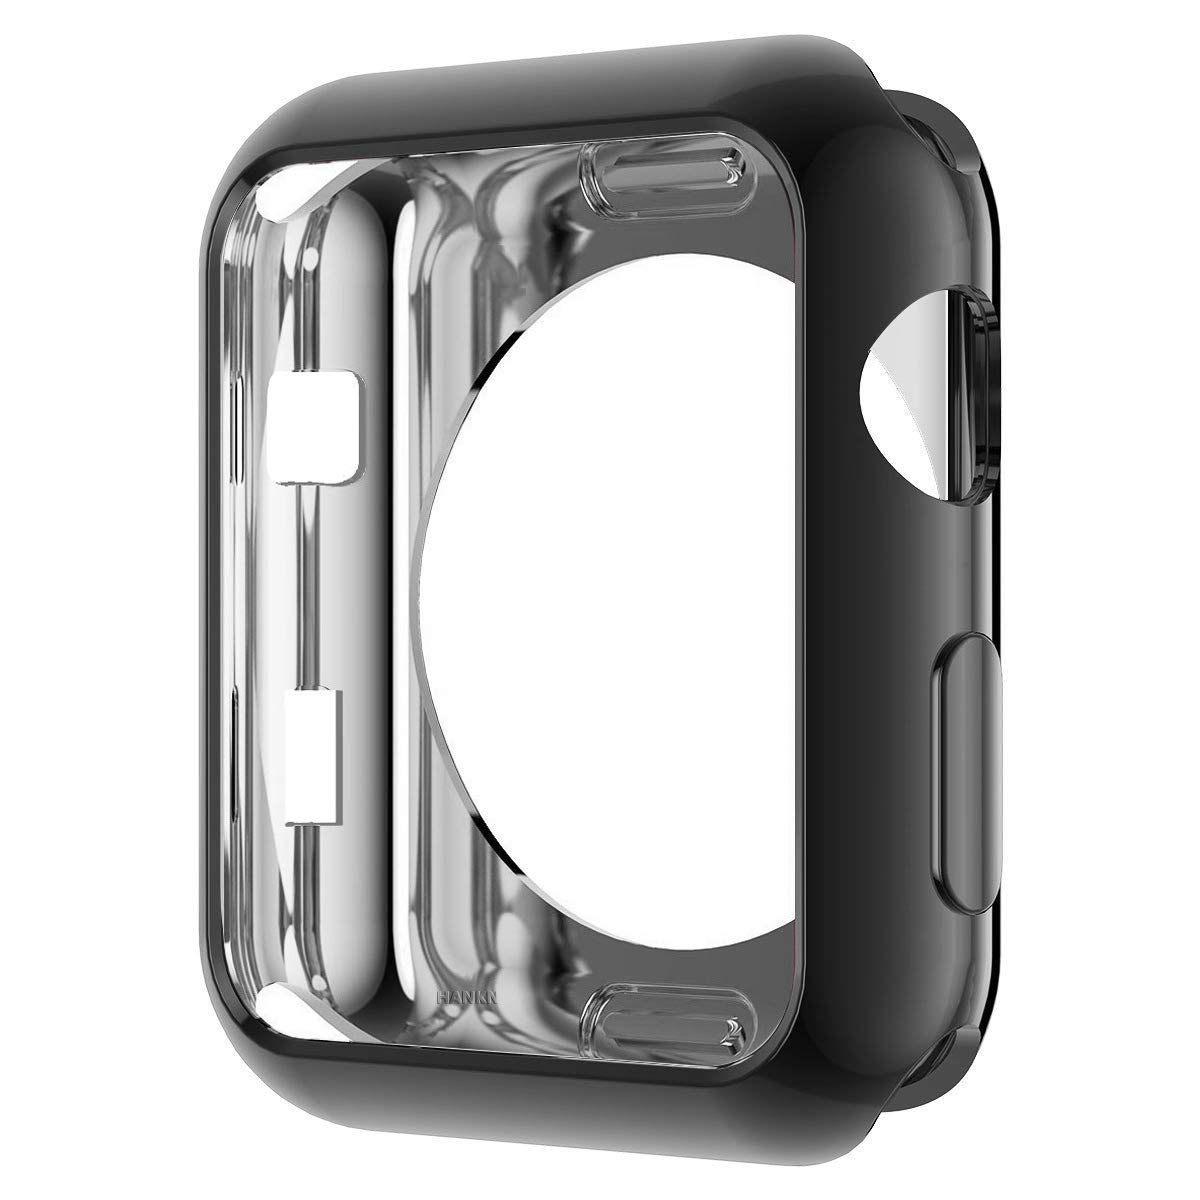 Funda Para Apple Watch Series 1 2 3 (42mm) Negra